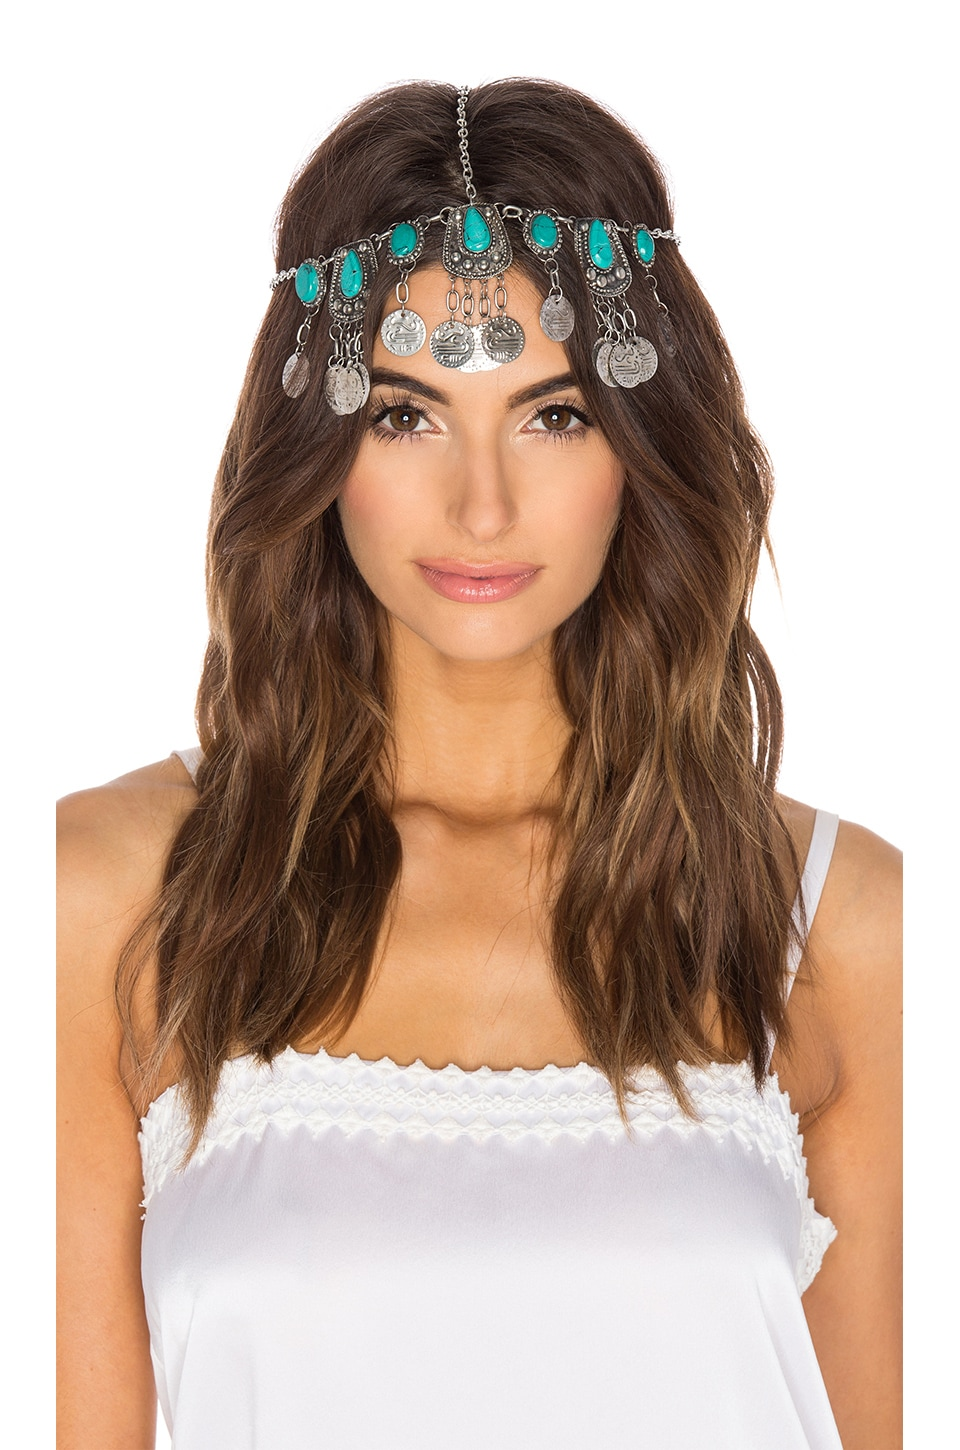 Raga Turquoise Stone & Coin Headpiece in Silver